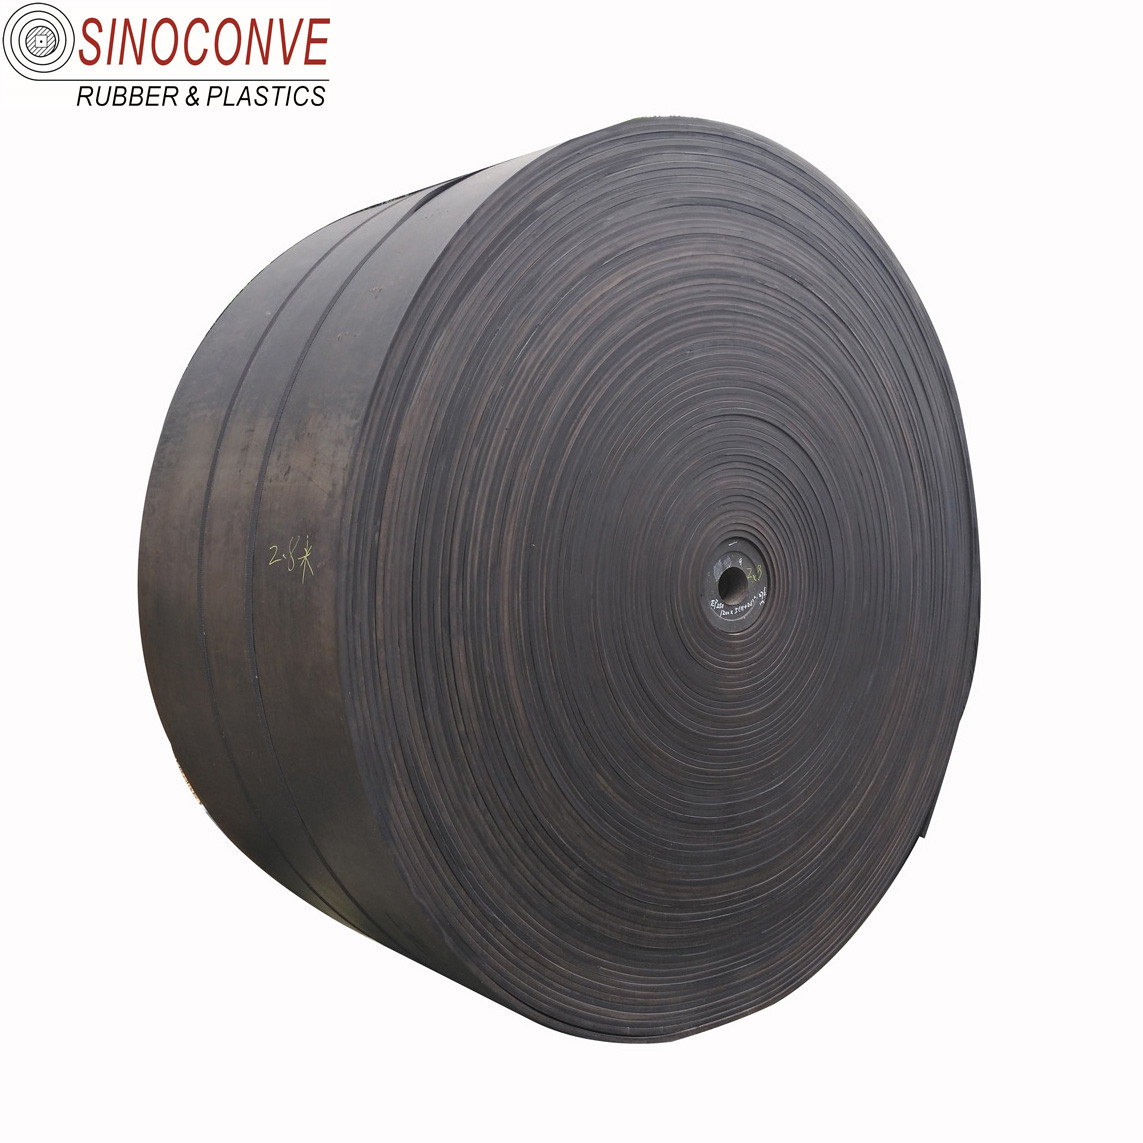 cold abrasion rip resistant textile ply conveyor <strong>belt</strong> circular endless rubber conveyor <strong>belt</strong>